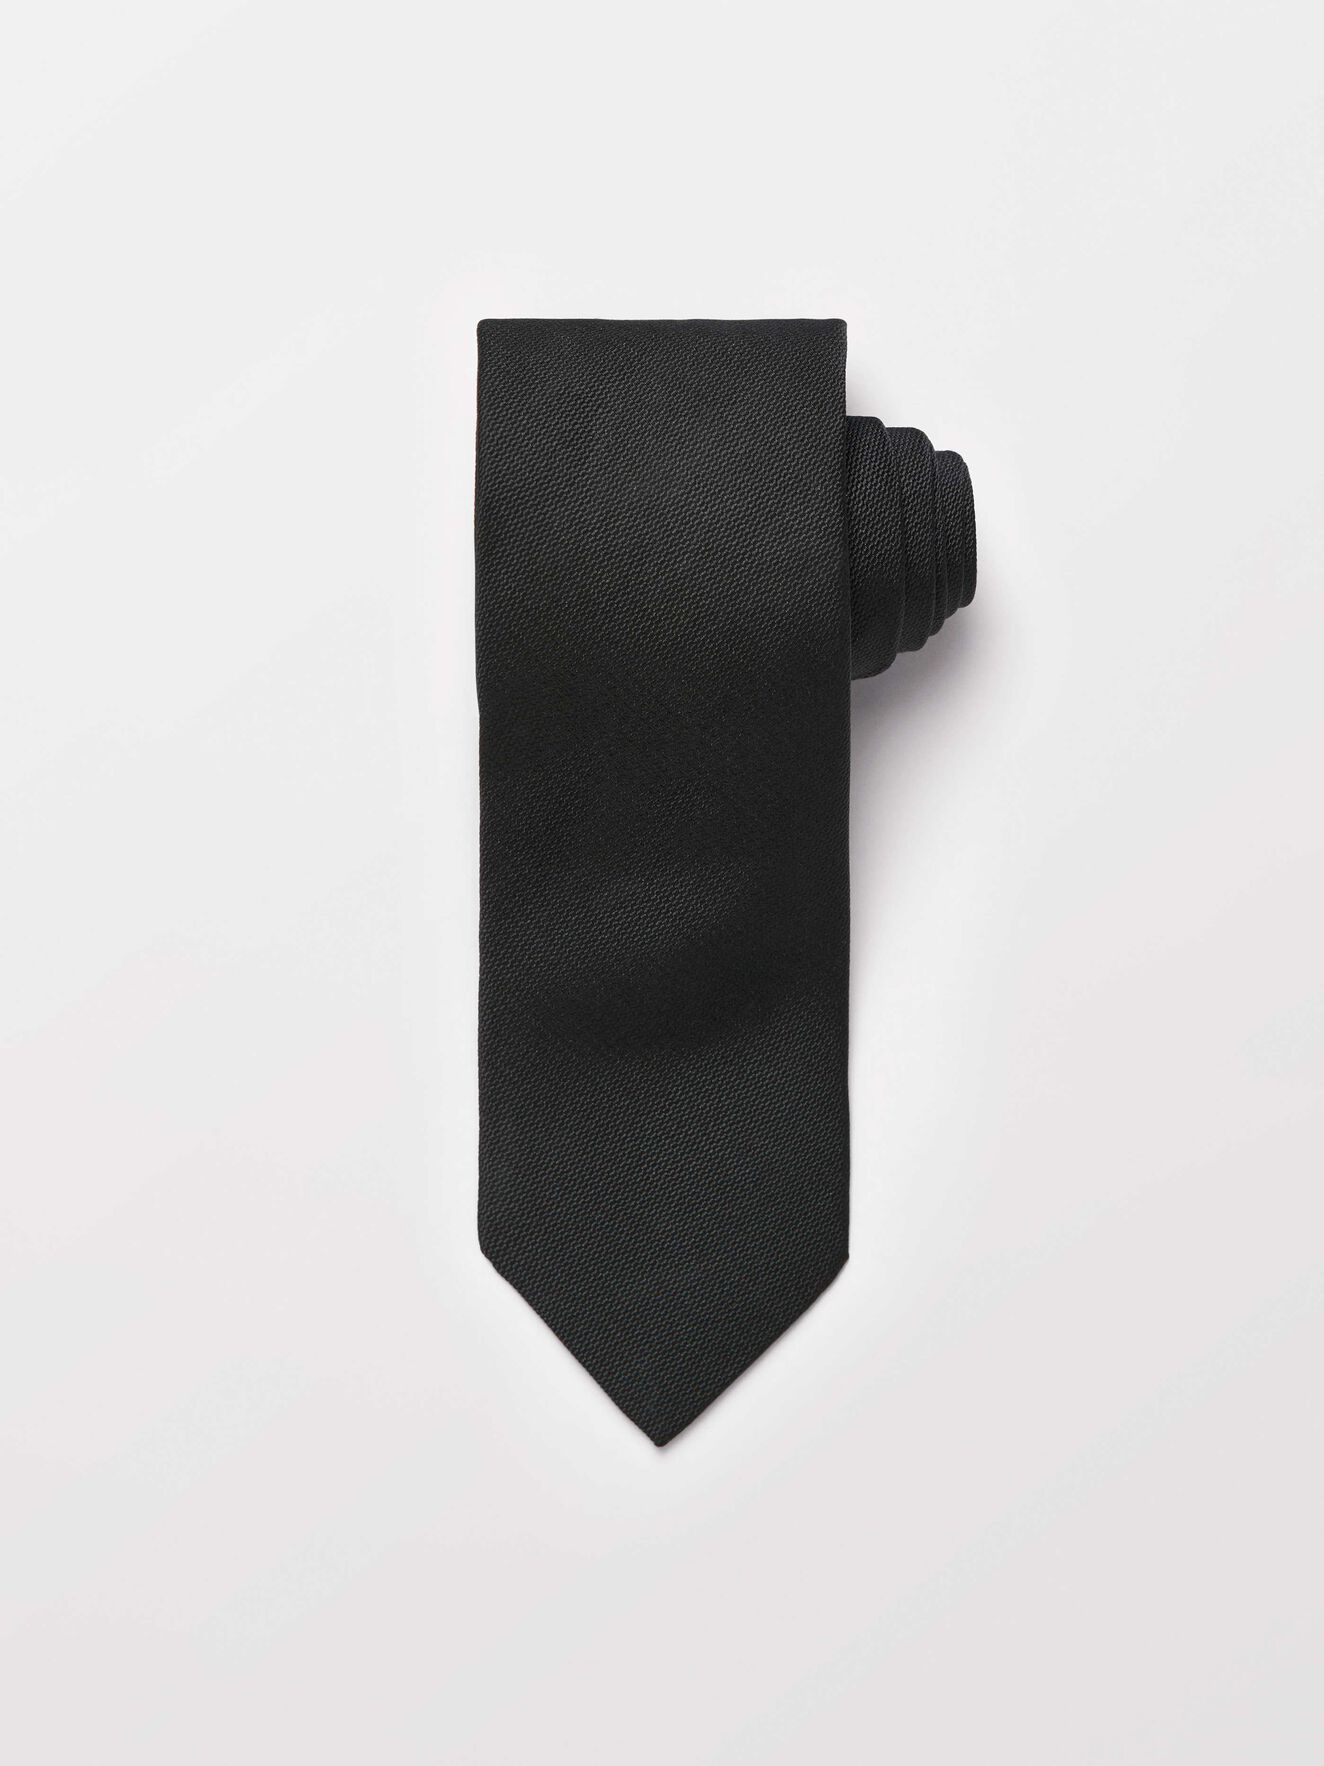 Samuell Tie in Black from Tiger of Sweden